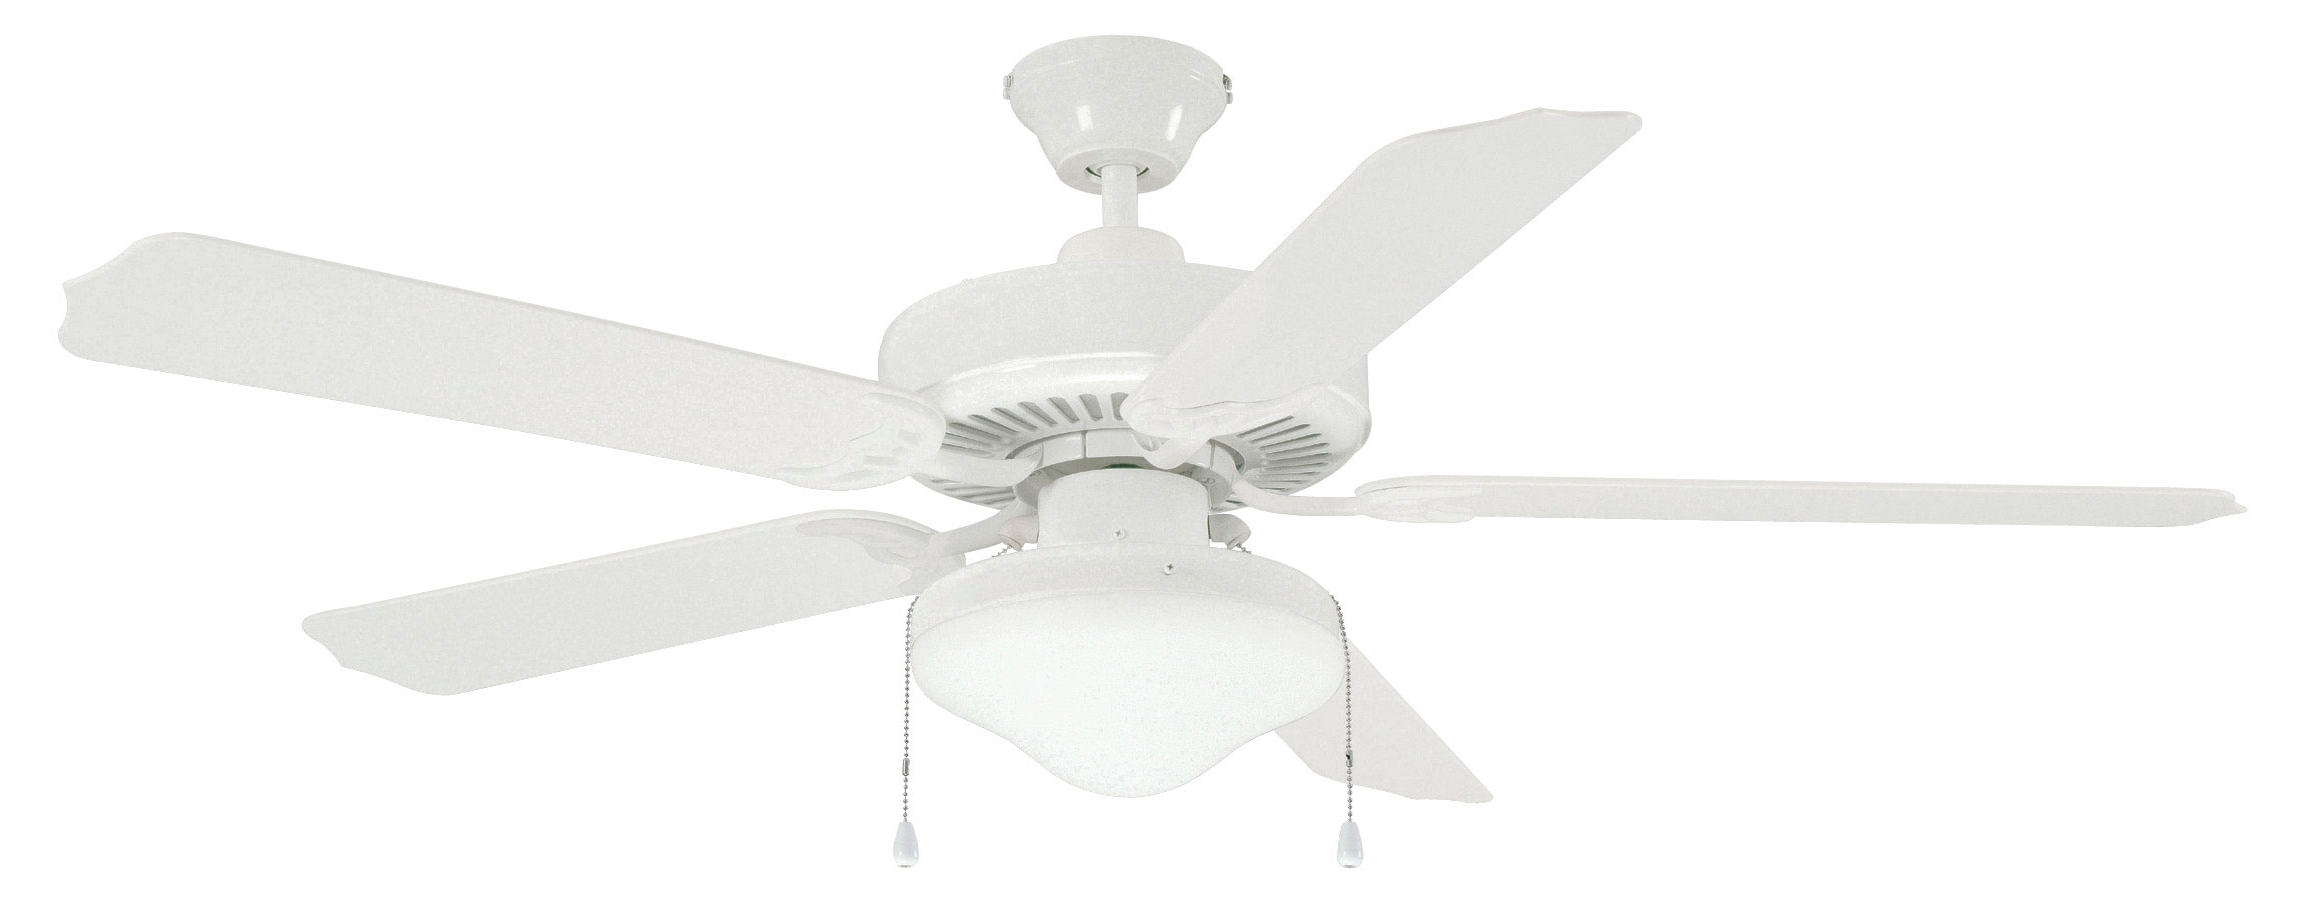 Favorite White Outdoor Ceiling Fans With Lights For Ceiling Fans White Ceiling Fan With Light Cruise Outdoor Wet Rated (View 6 of 20)